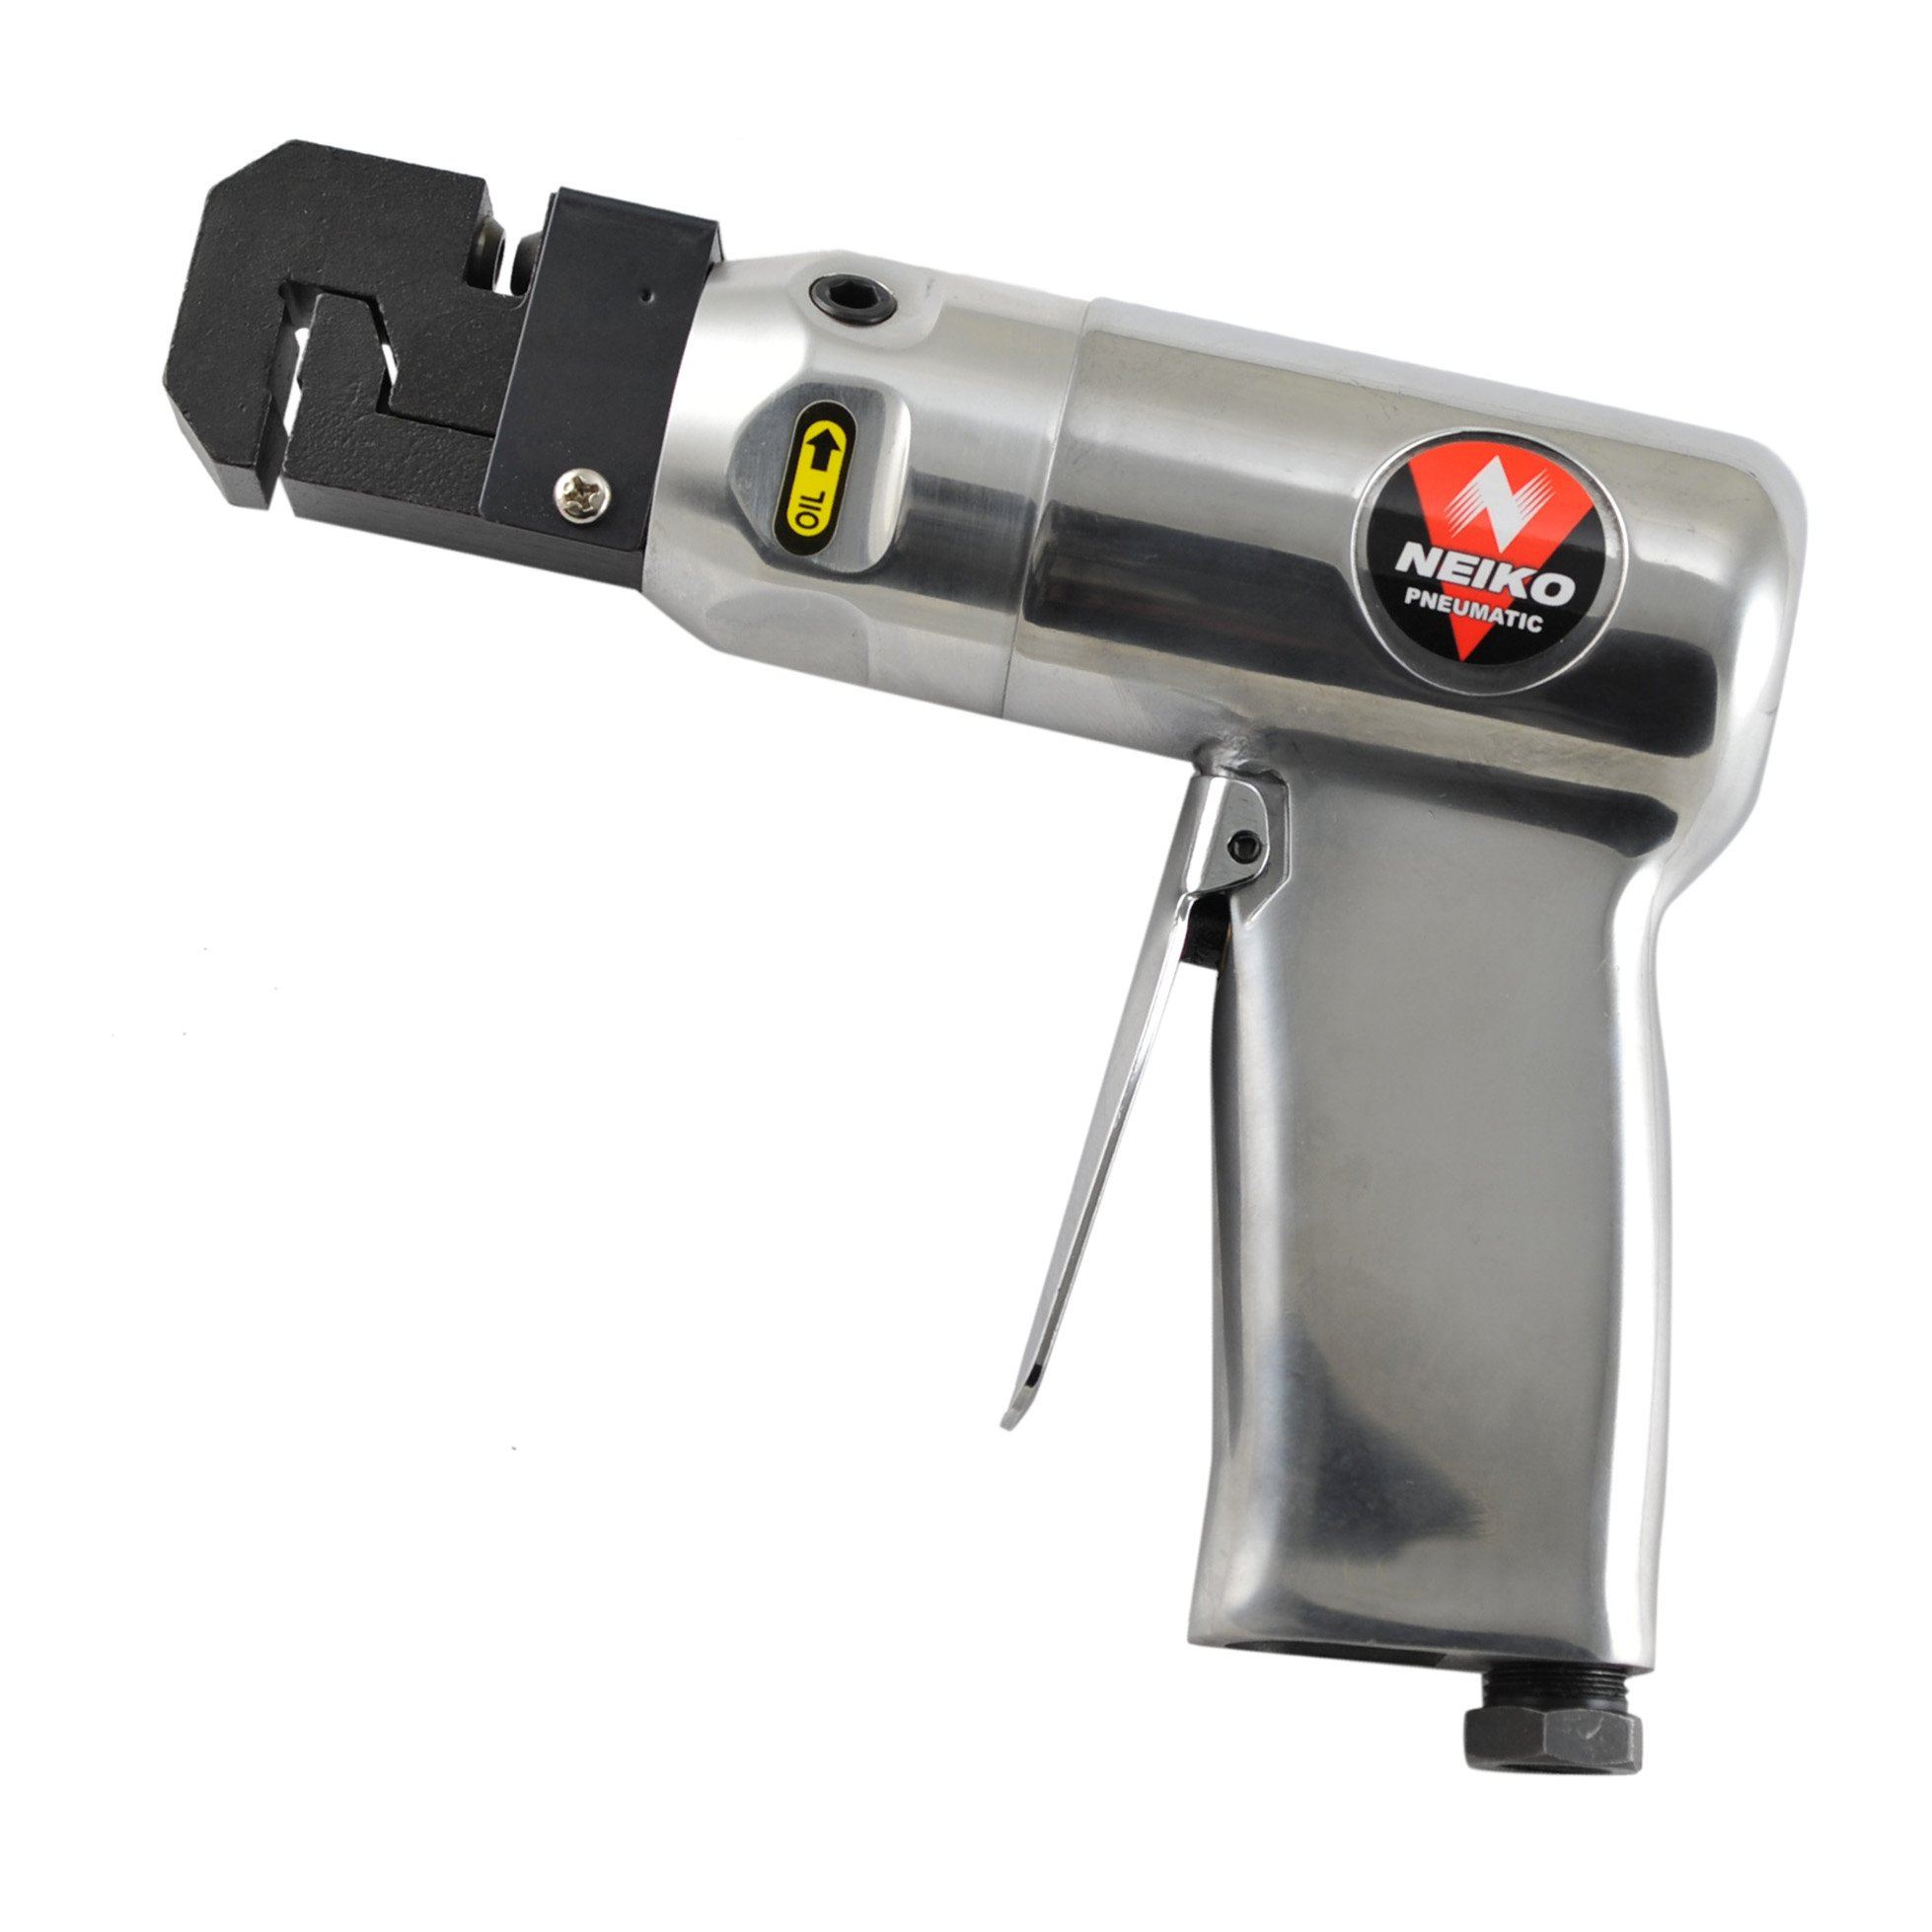 Neiko 30091A Pneumatic Hole Punch and Flange Crimp Joggler Tool, Pistol Grip | 1/4'' NPT Air Inlet, 90-120 PSI by Neiko (Image #4)